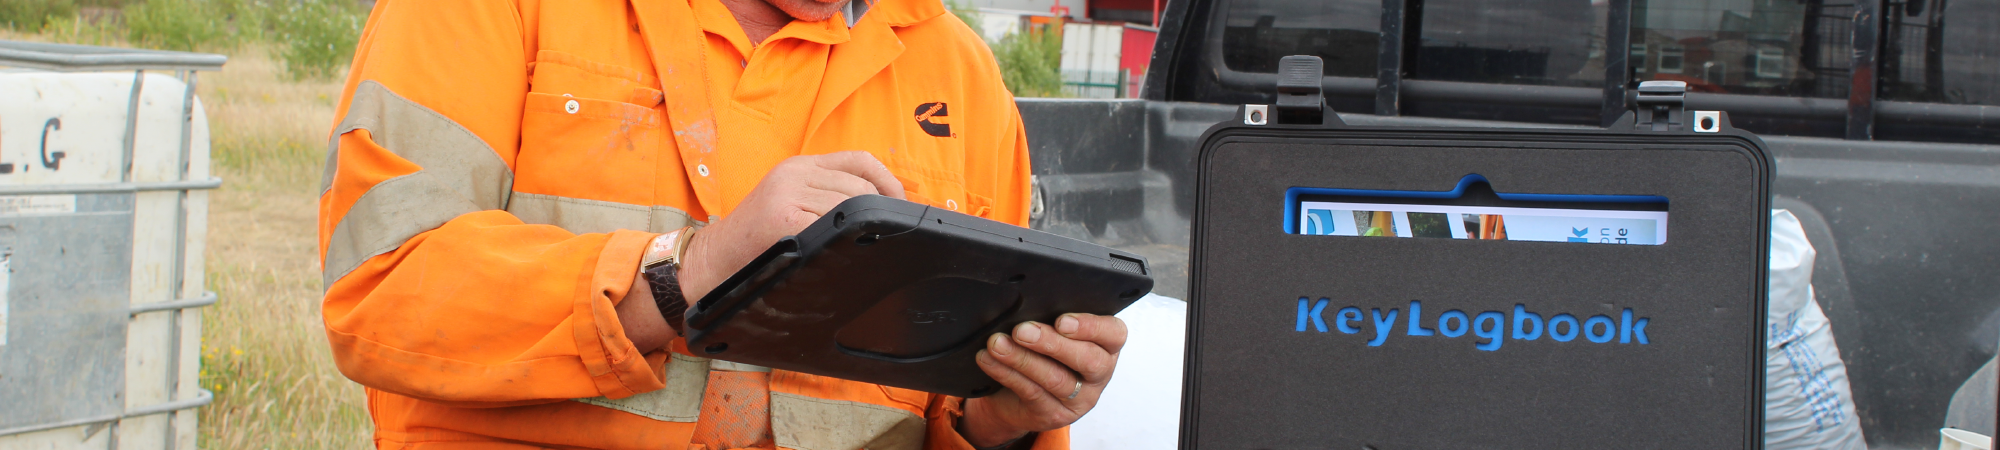 KeyLogbook in use on site